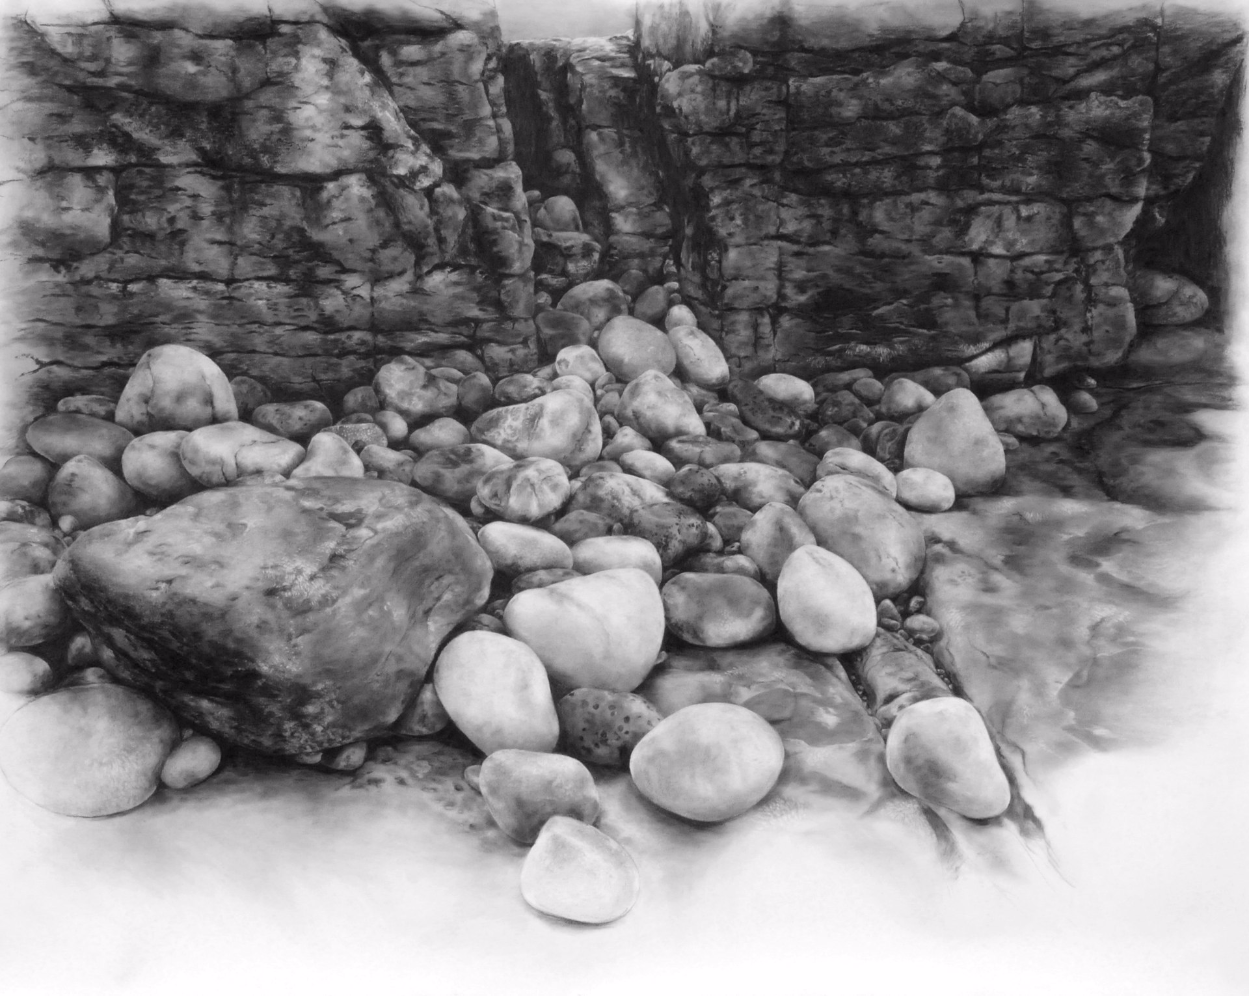 Origins , 2011. Charcoal on paper.45 x 57 inches. Collection of the State of New Mexico Art in Public Places program, San Juan Community College.